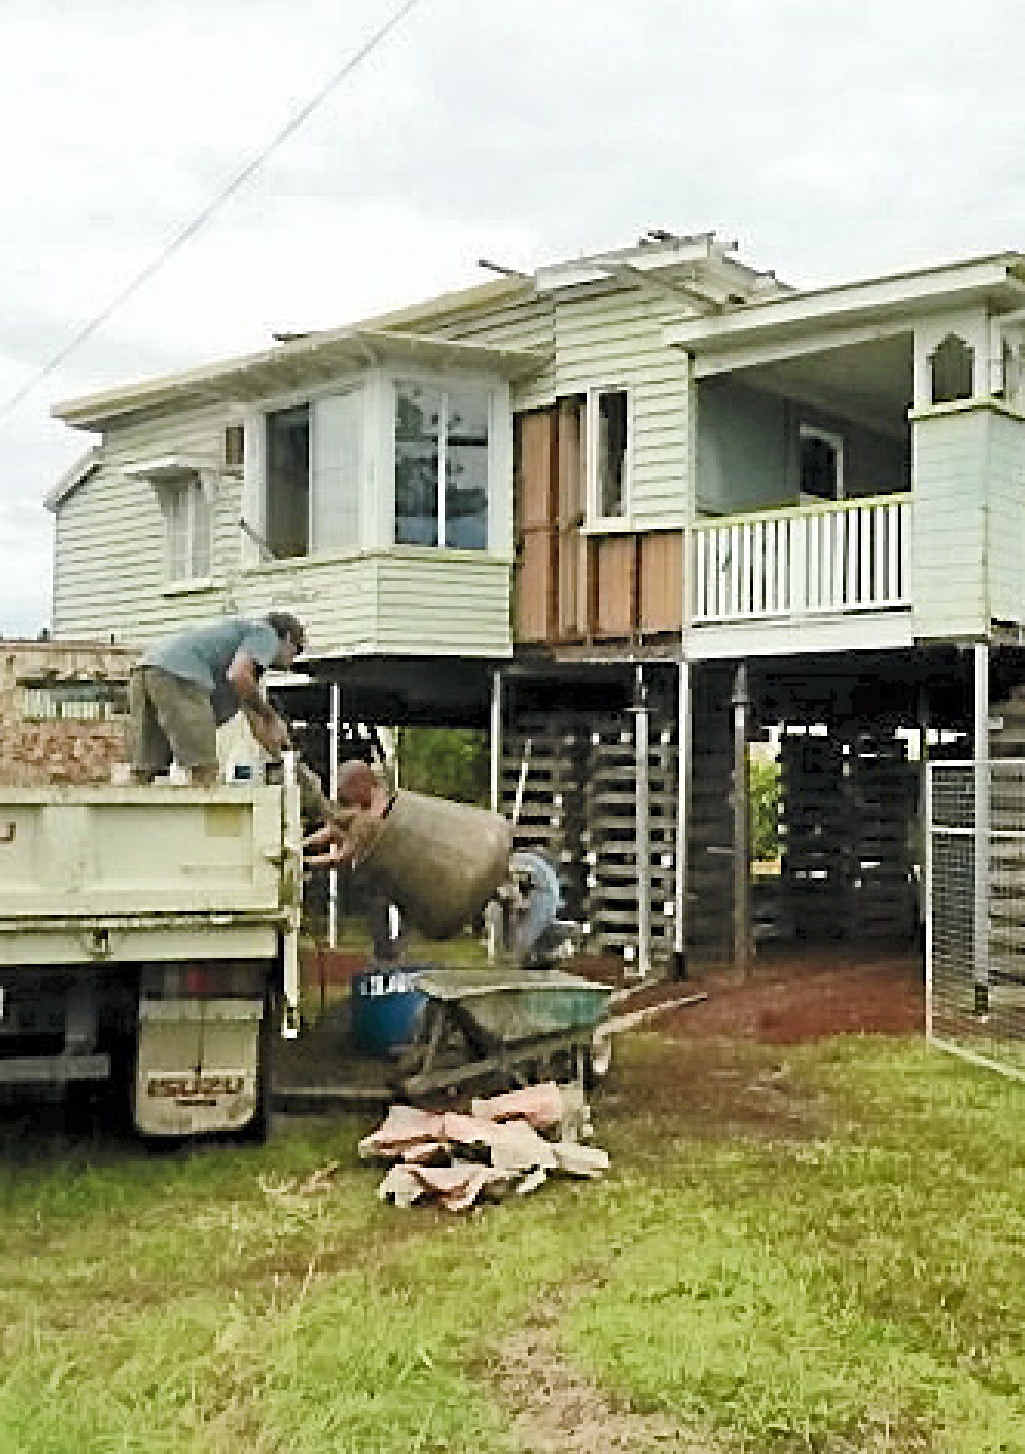 MOVING HOUSE: The house Yhurri Gurri has been safely relocated from Gladstone to a riverside property at Elliott Heads. The process has been a labour of love for new homeowner Kevin Taylor.